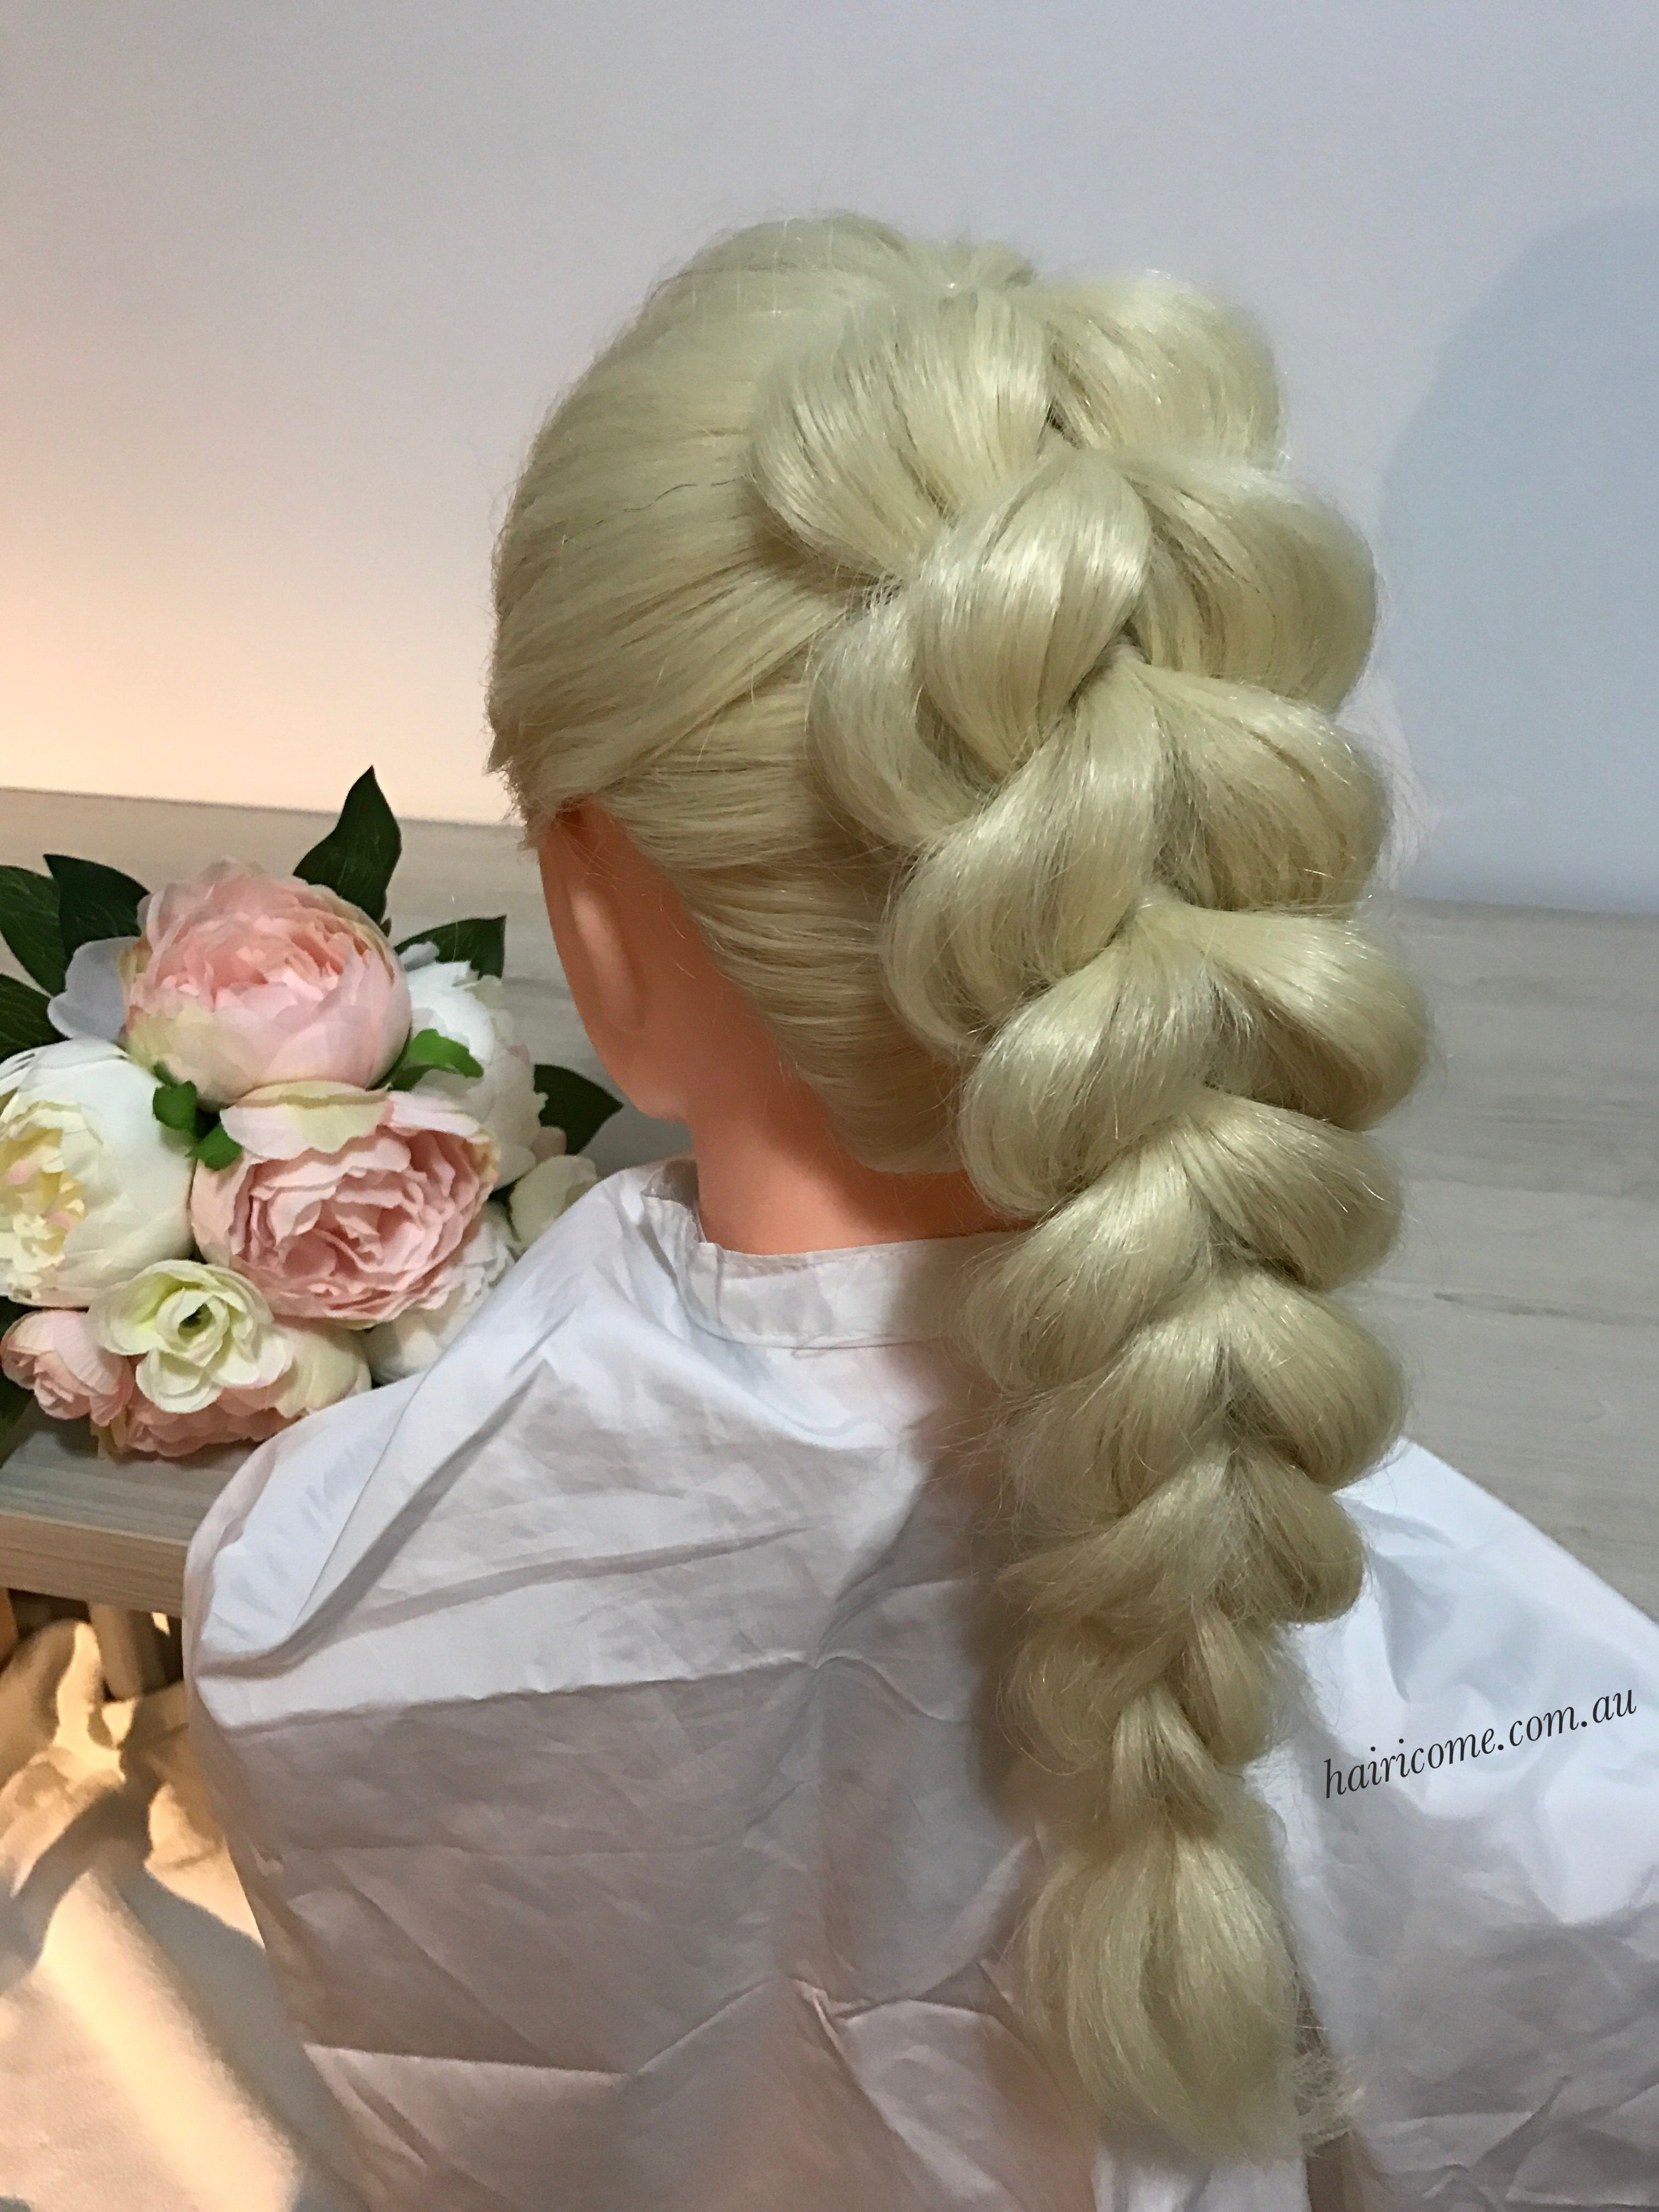 Pin by hair i come on hair i come braided upstyles pinterest